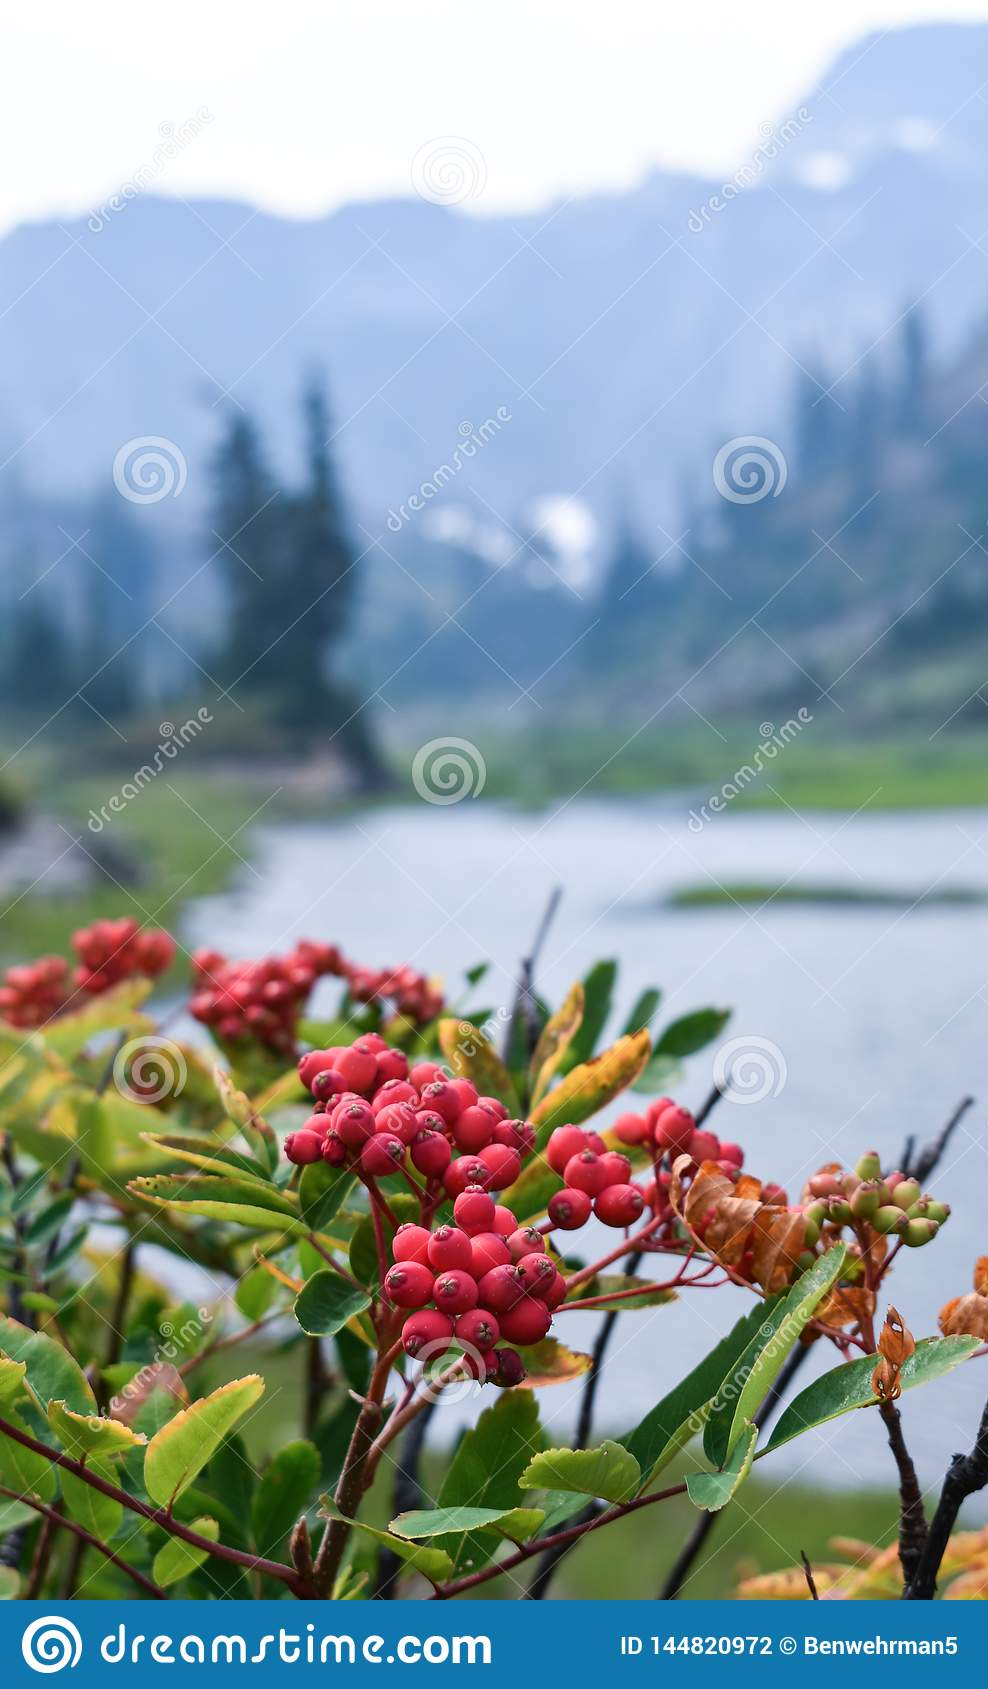 Red Berries Growing by a Lake